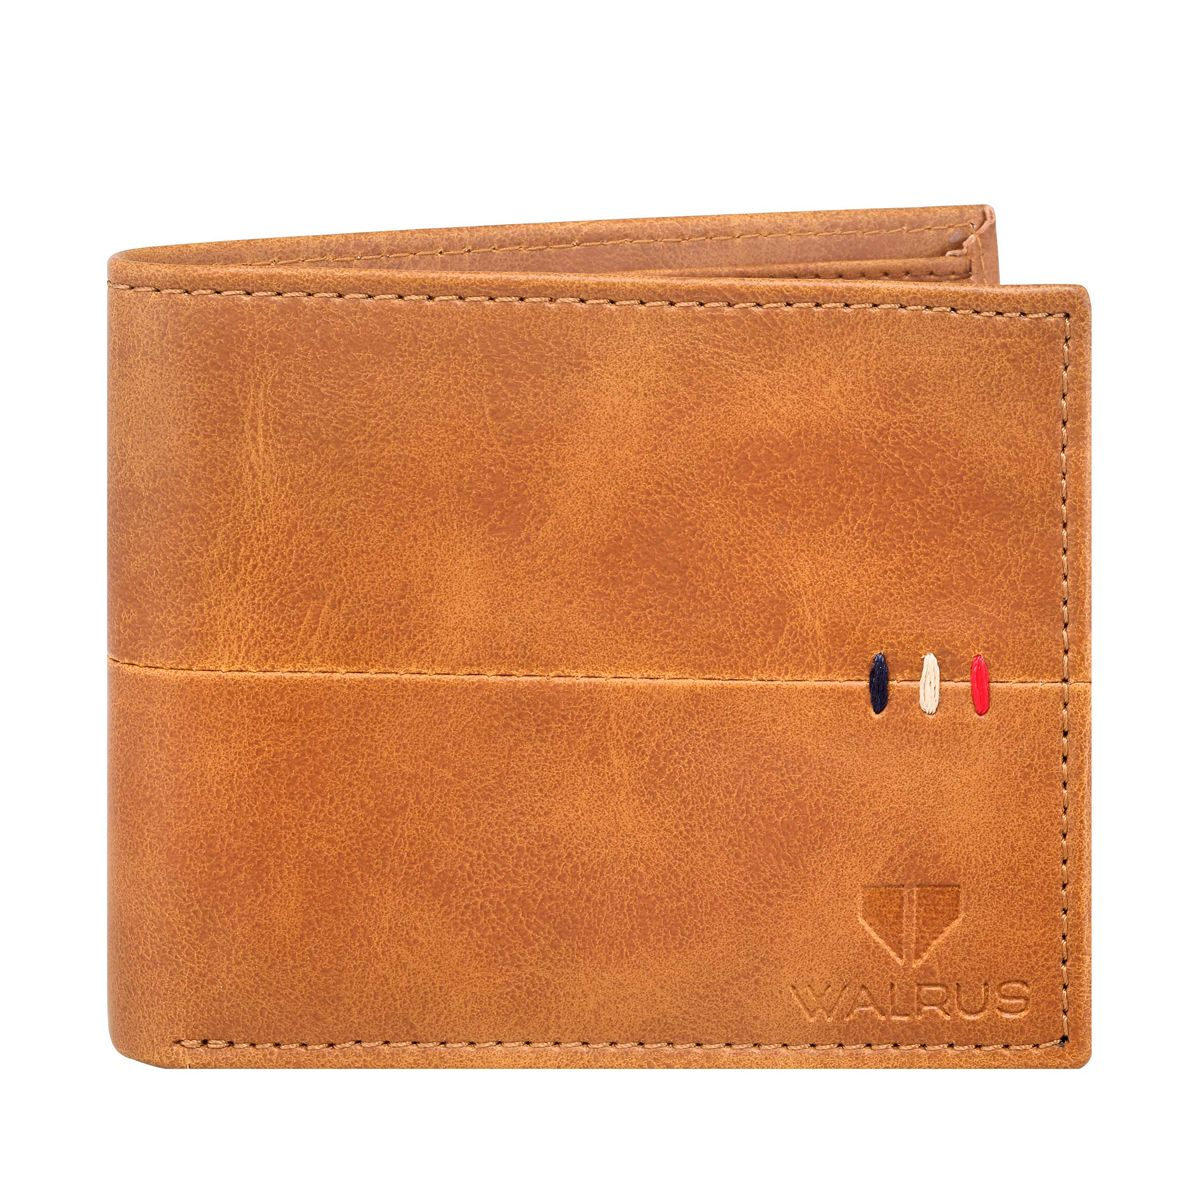 Walrus Daniel Tan Color Men Leather Wallet- WW-DNL-16